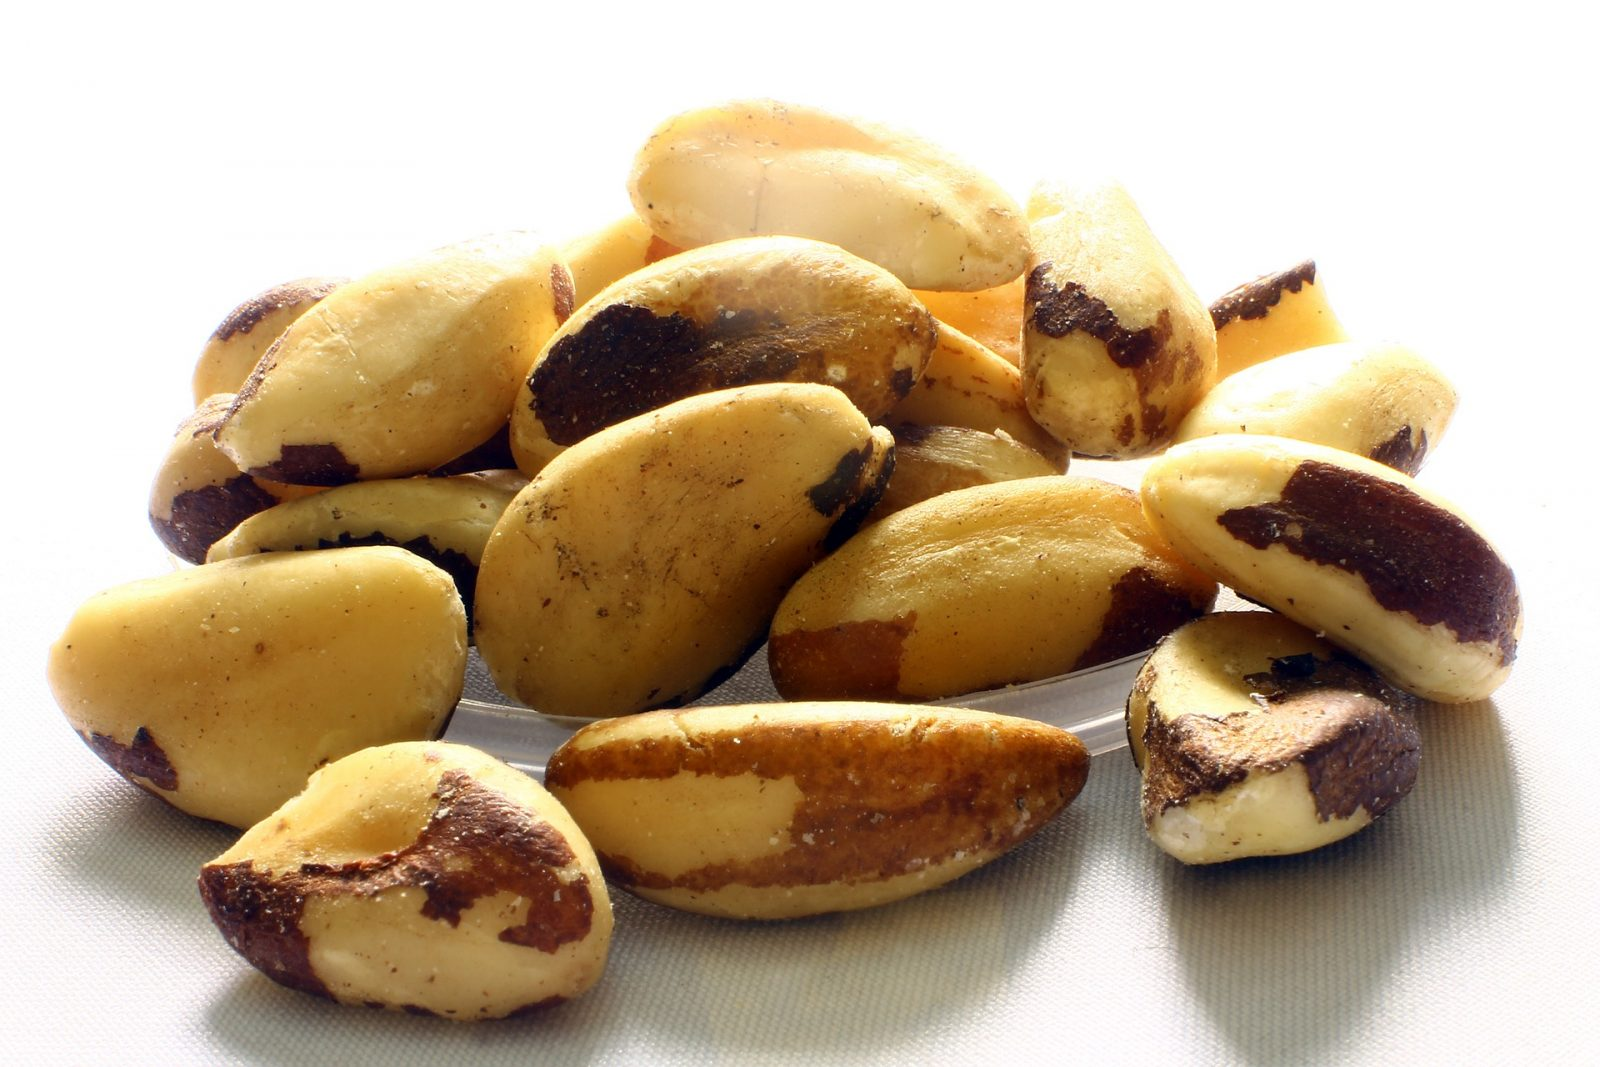 Organic brazil nuts: https://amzn.to/2SzPfE4